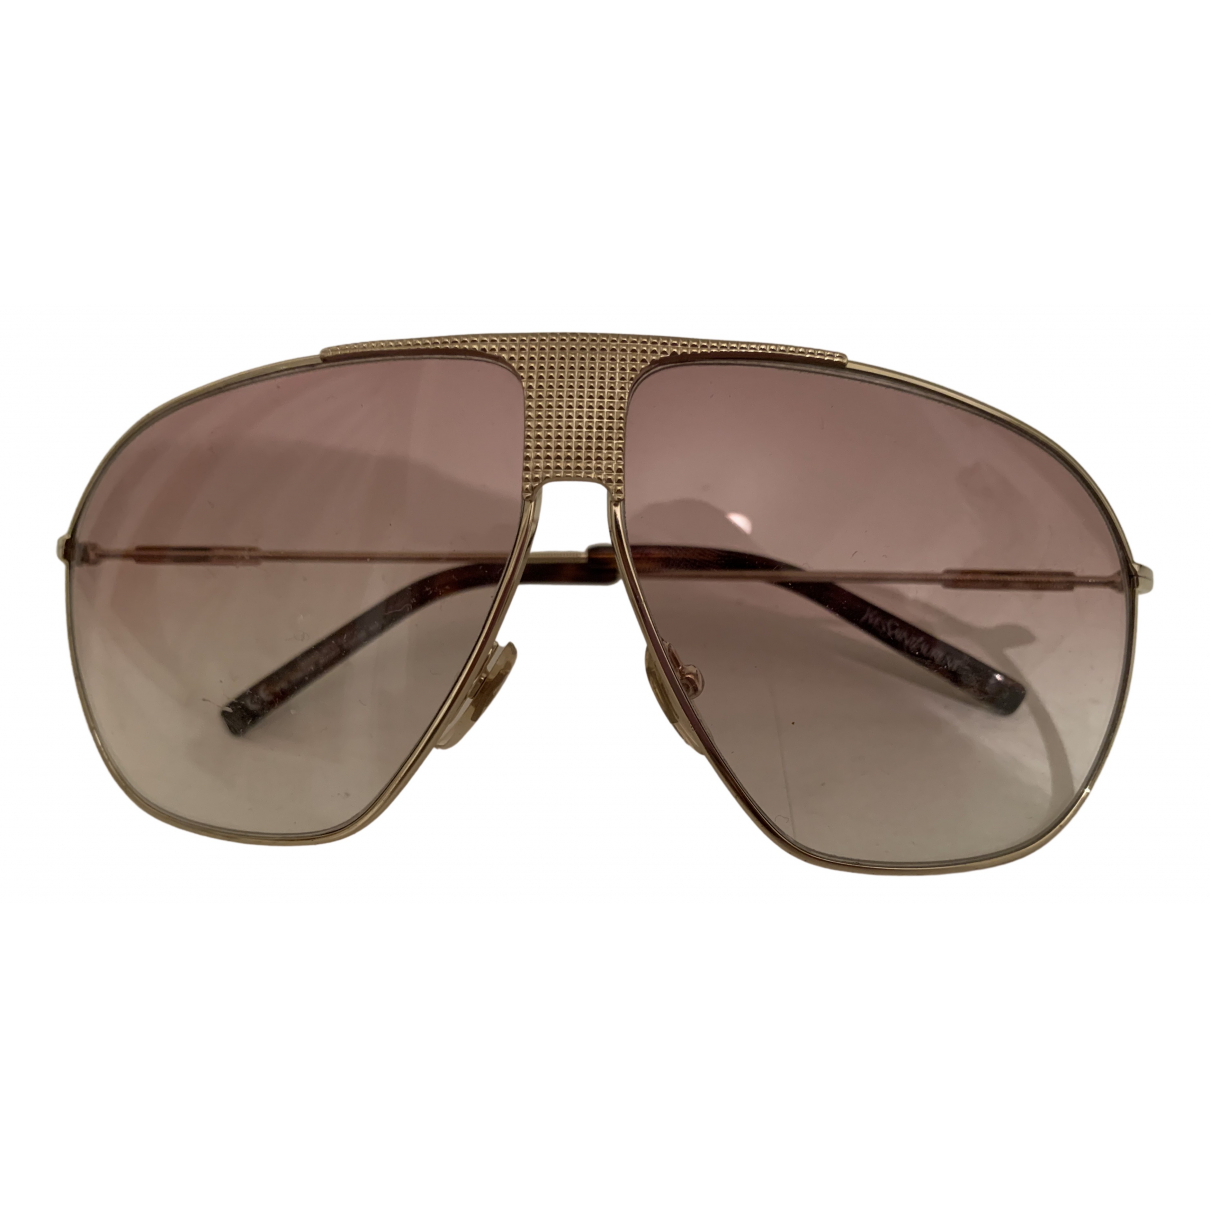 Yves Saint Laurent N Gold Metal Sunglasses for Men N